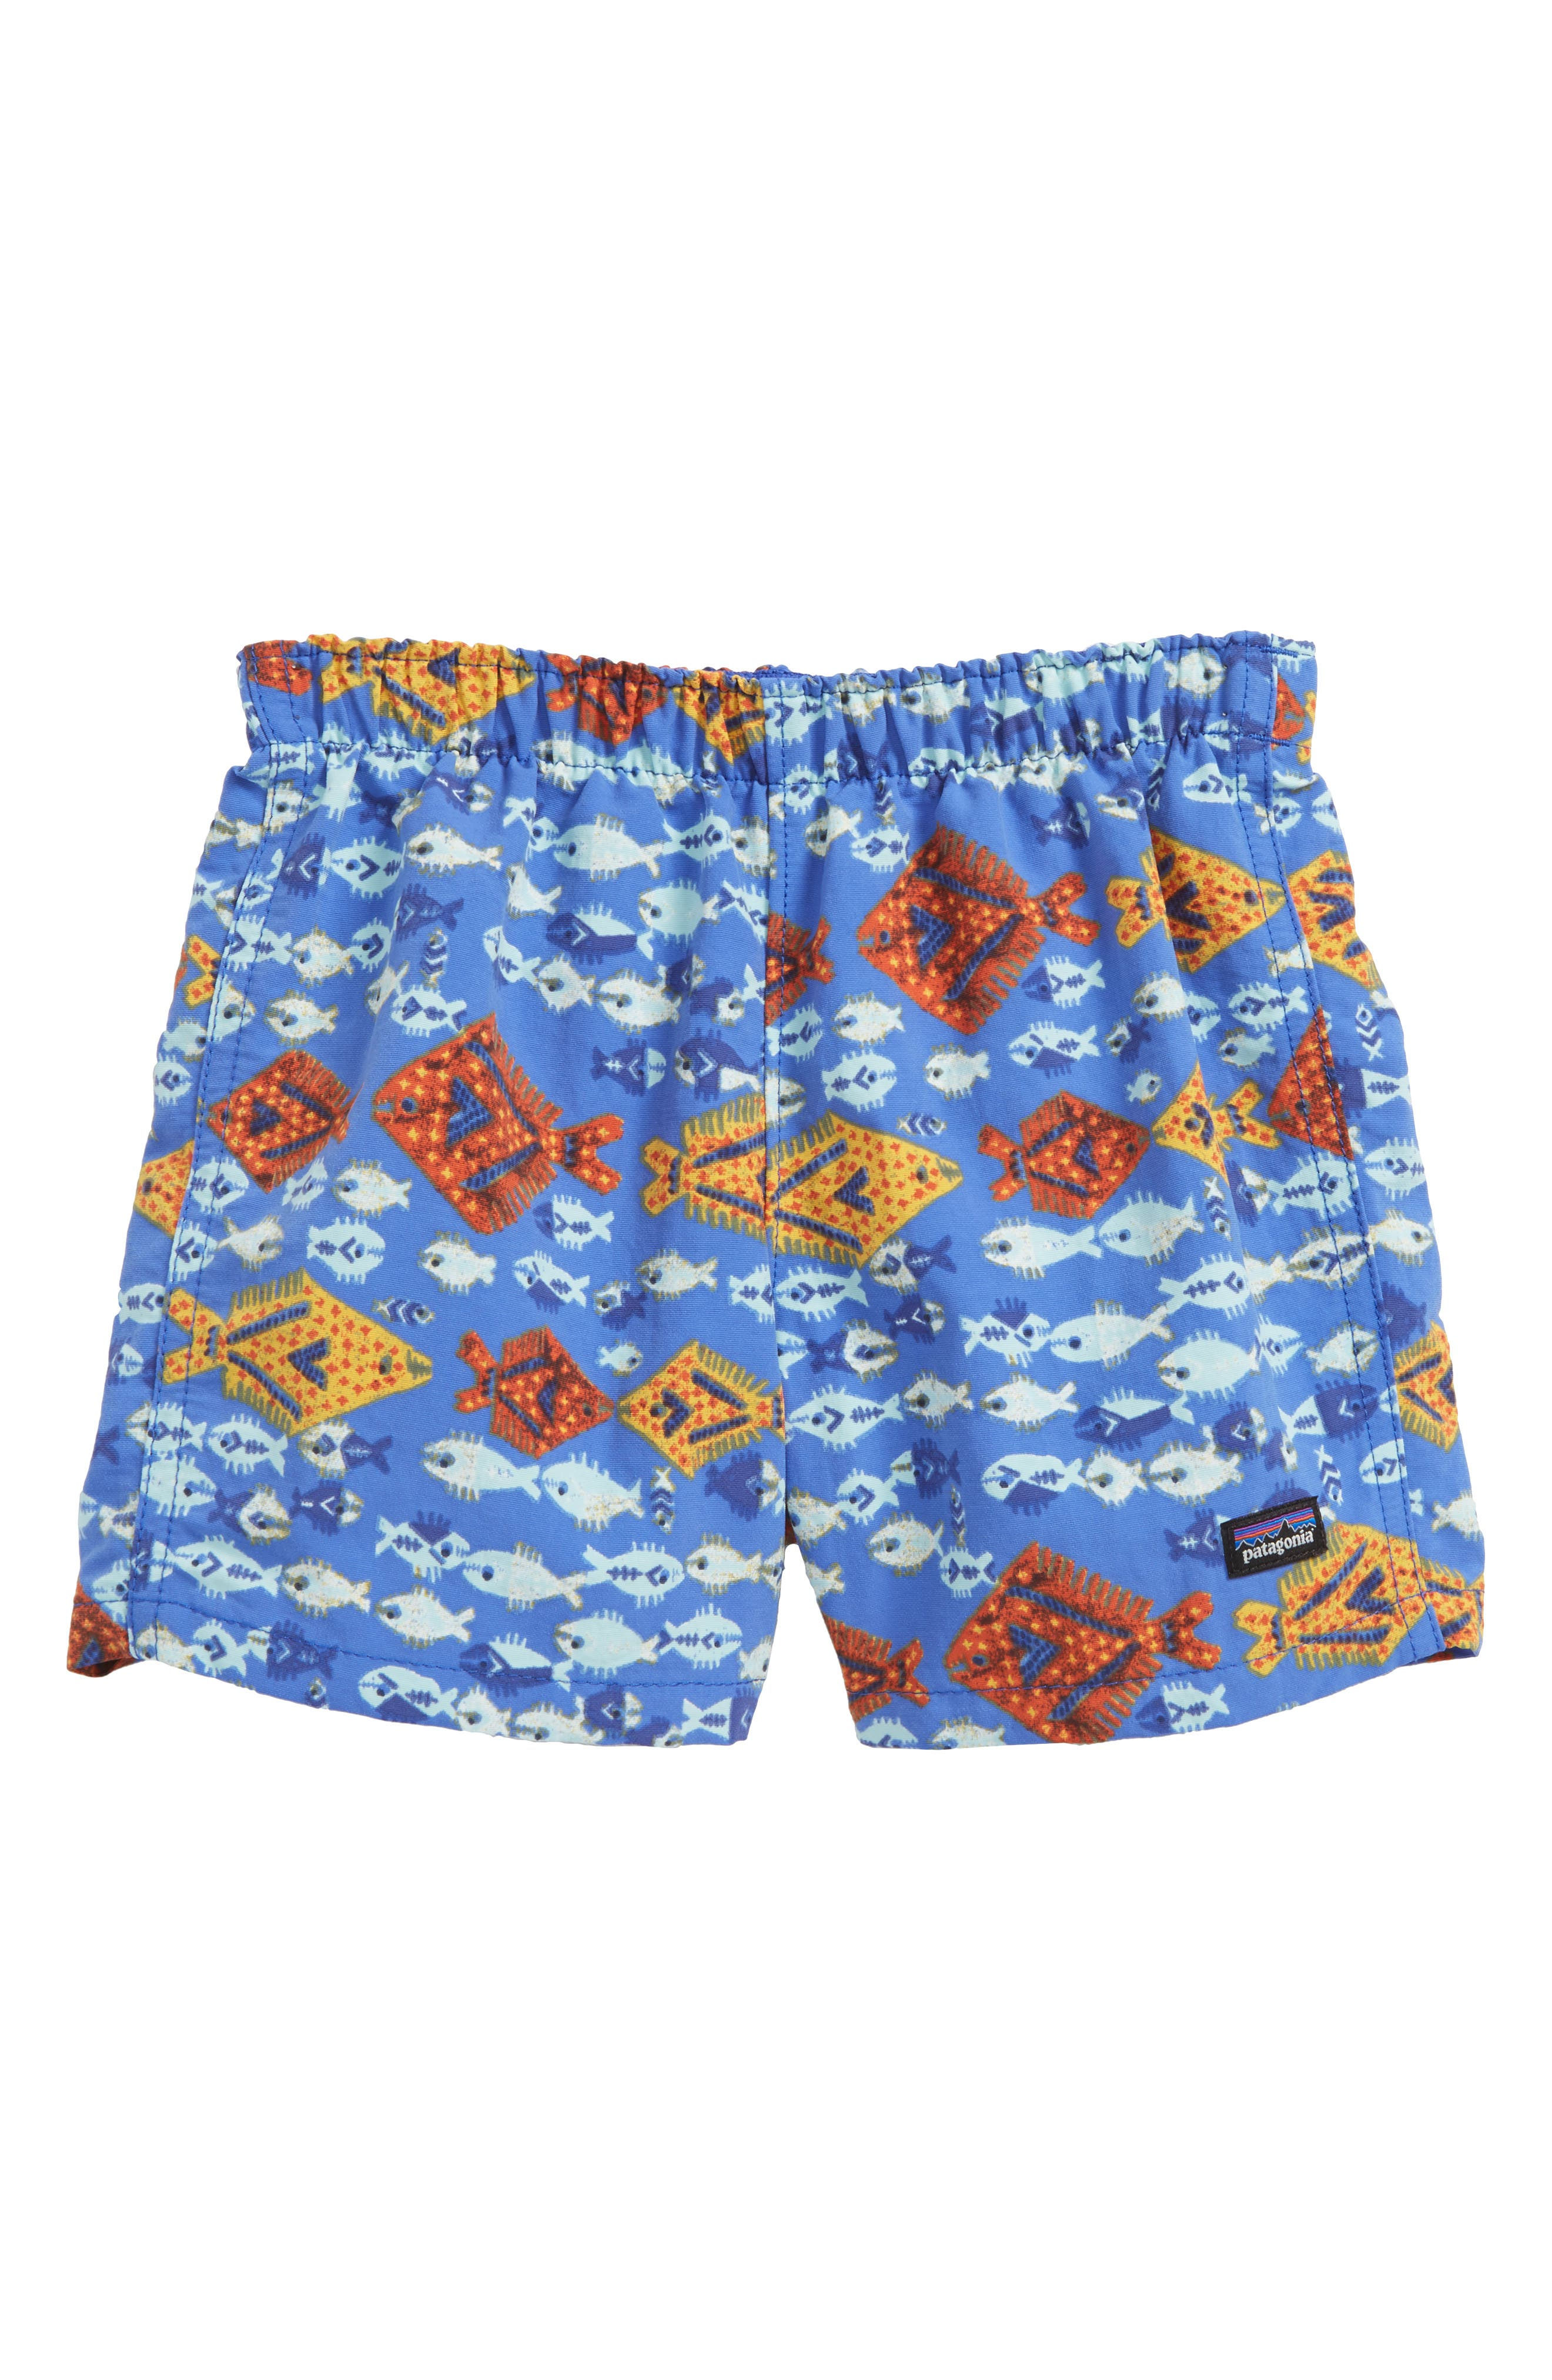 Baggies<sup>™</sup> Shorts,                             Main thumbnail 1, color,